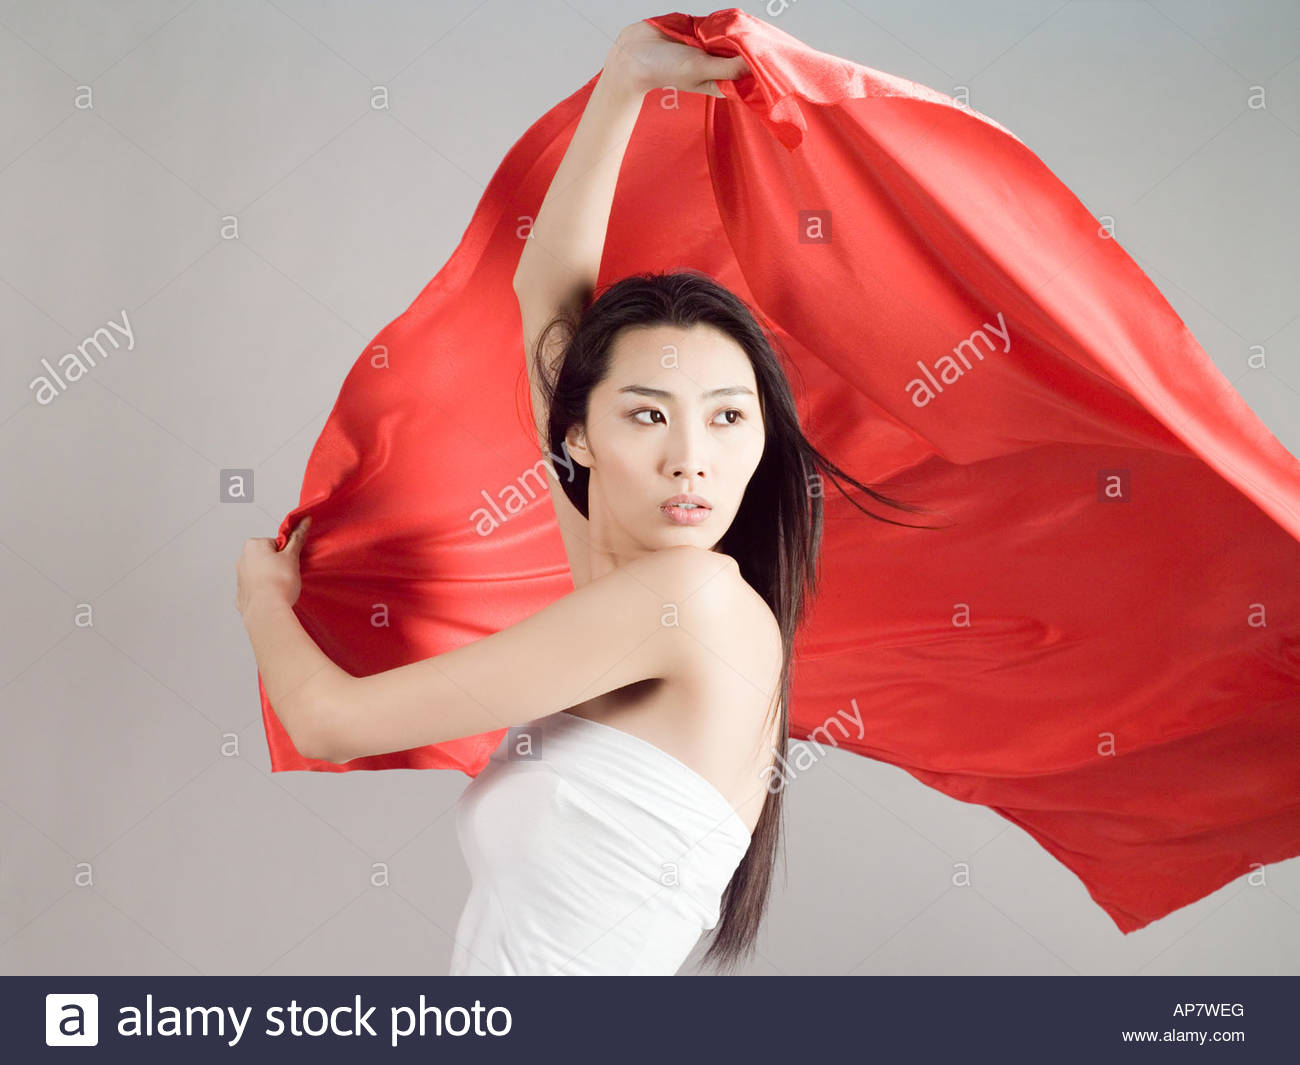 Chinese woman holding a red flag - Stock Image